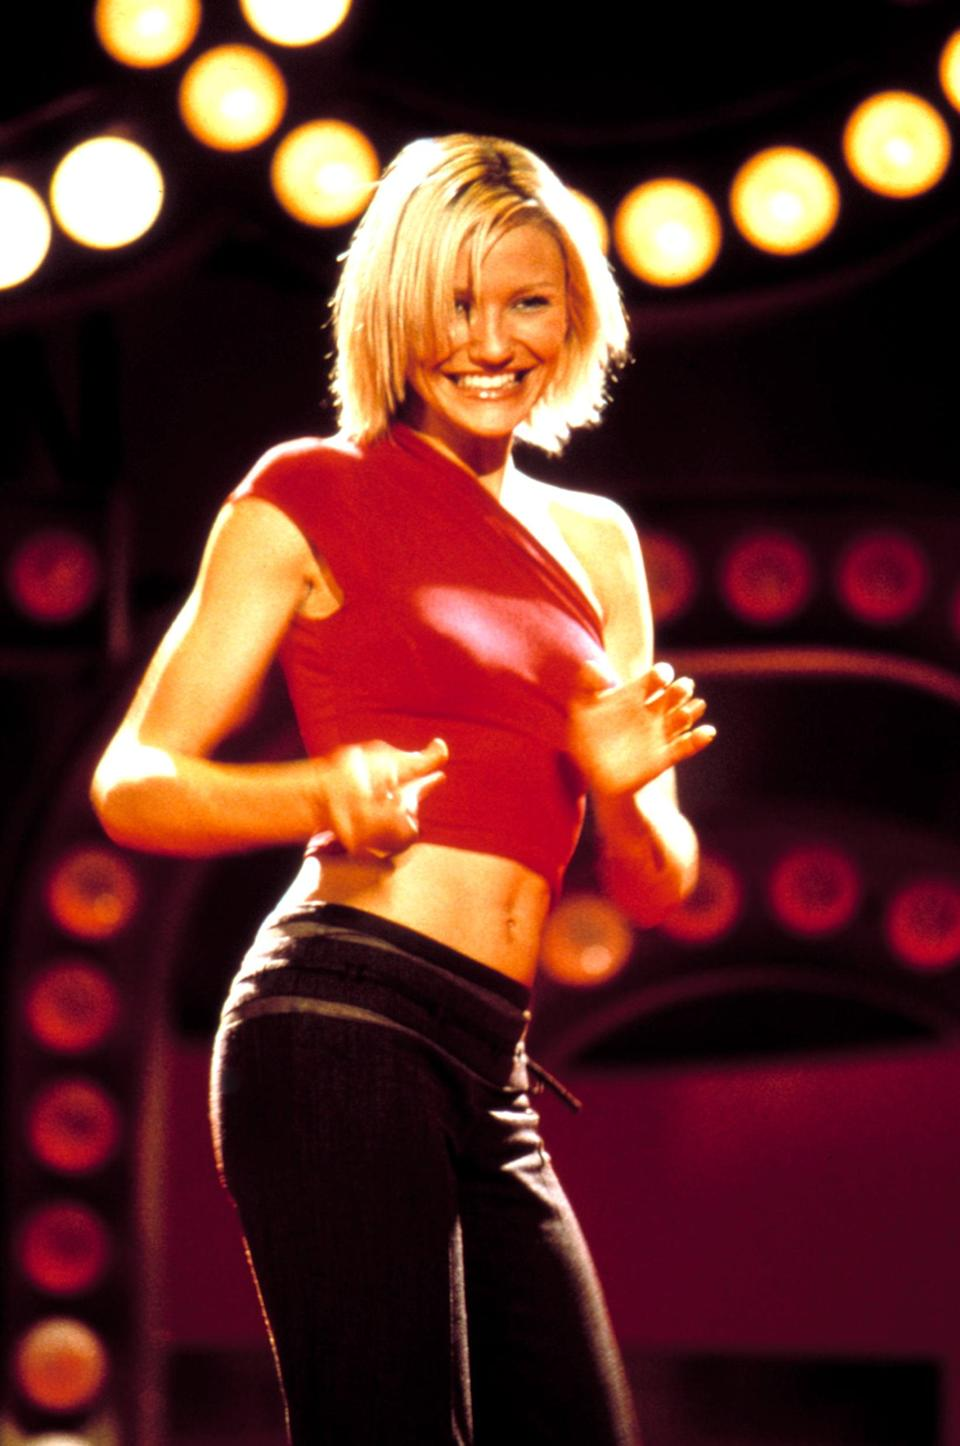 <p>Cameron's red one-shouldered crop top with low-slung black pants is so '00s.</p>